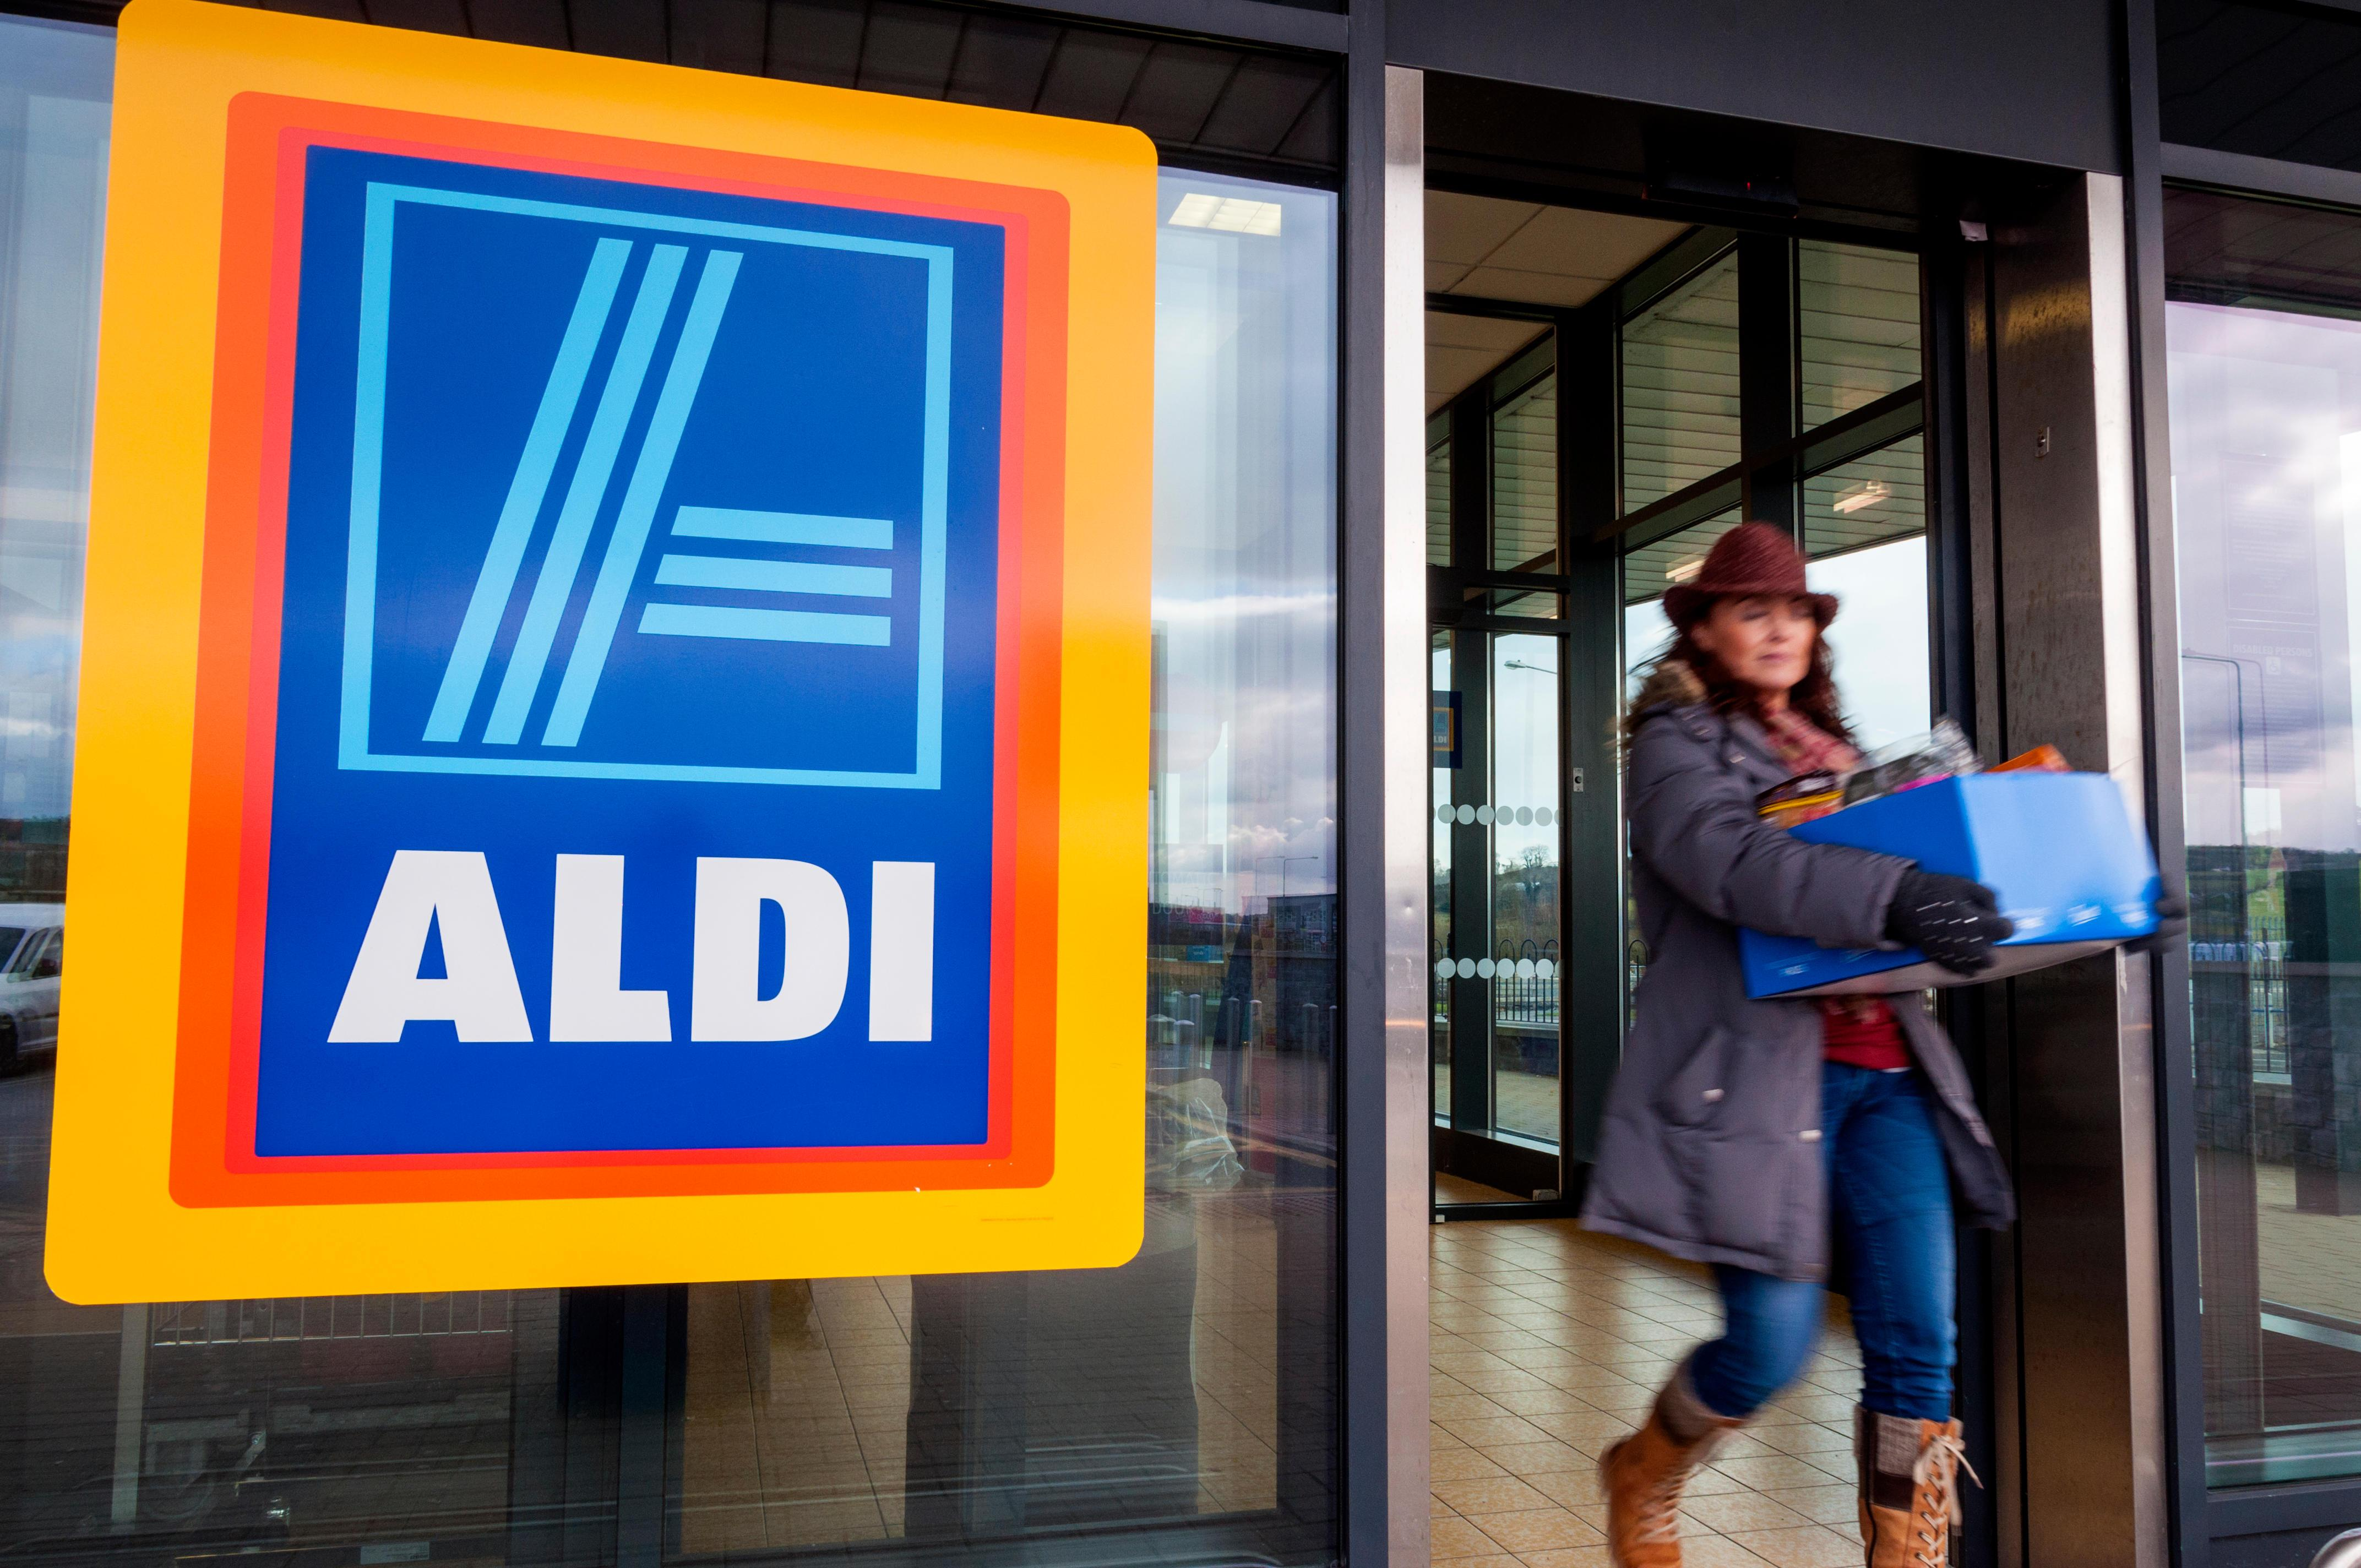 Aldi has similar items from the same supplier - but at lower price points